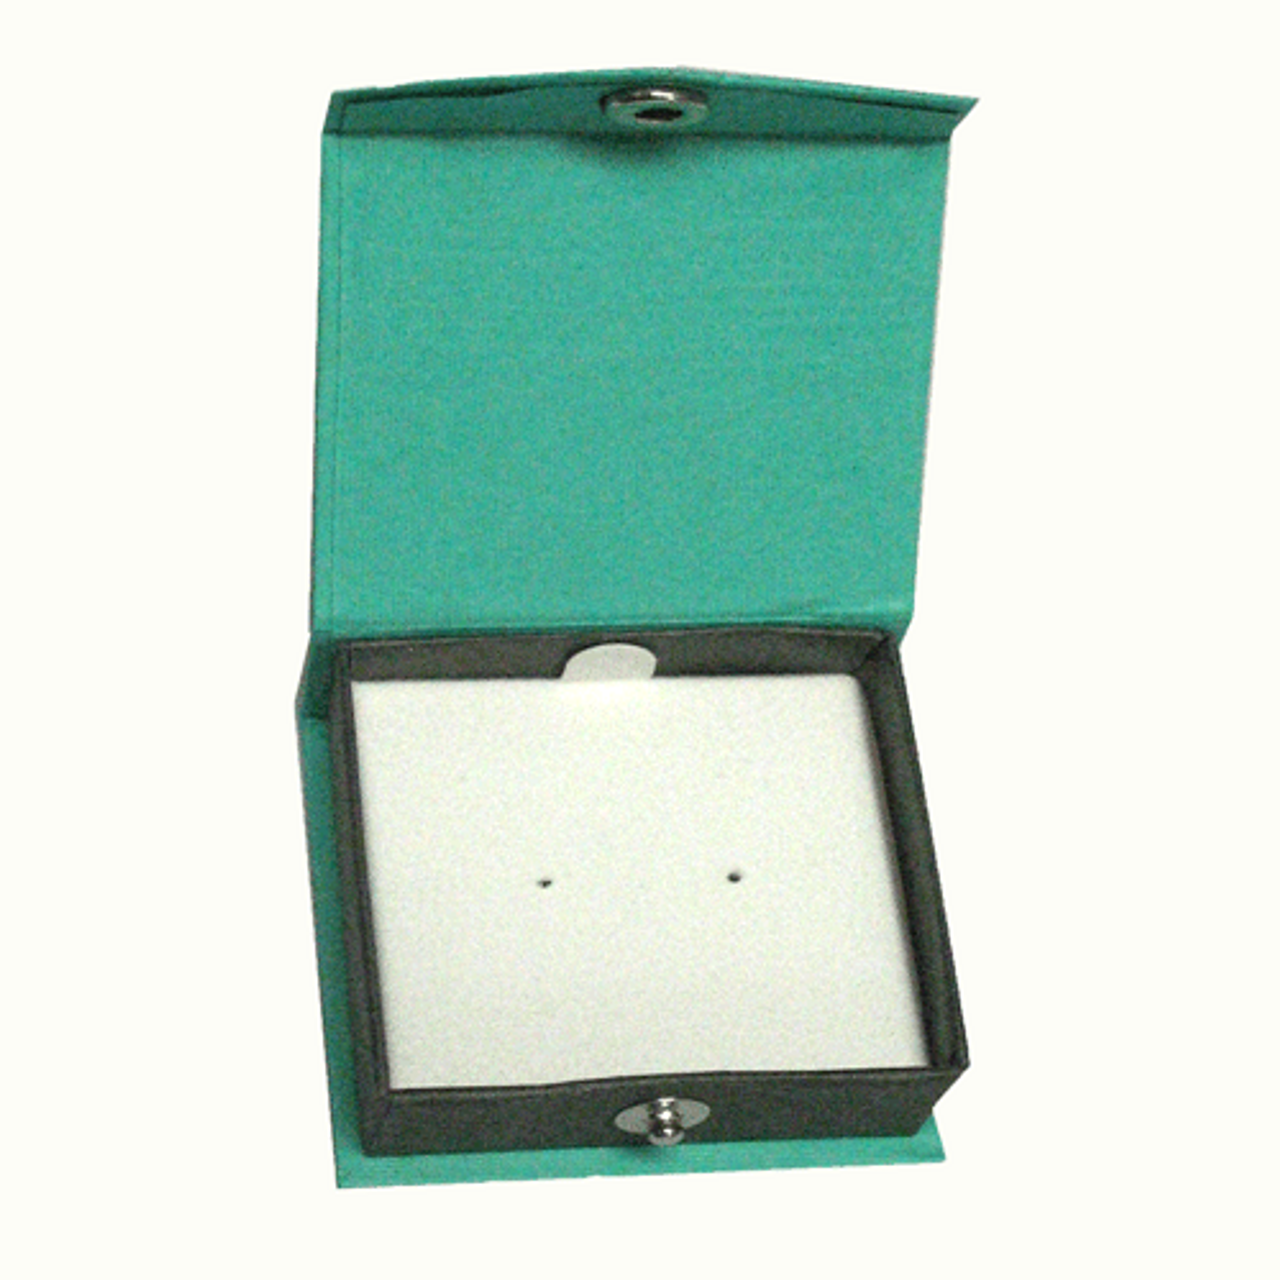 Contemporary Snap green earring box